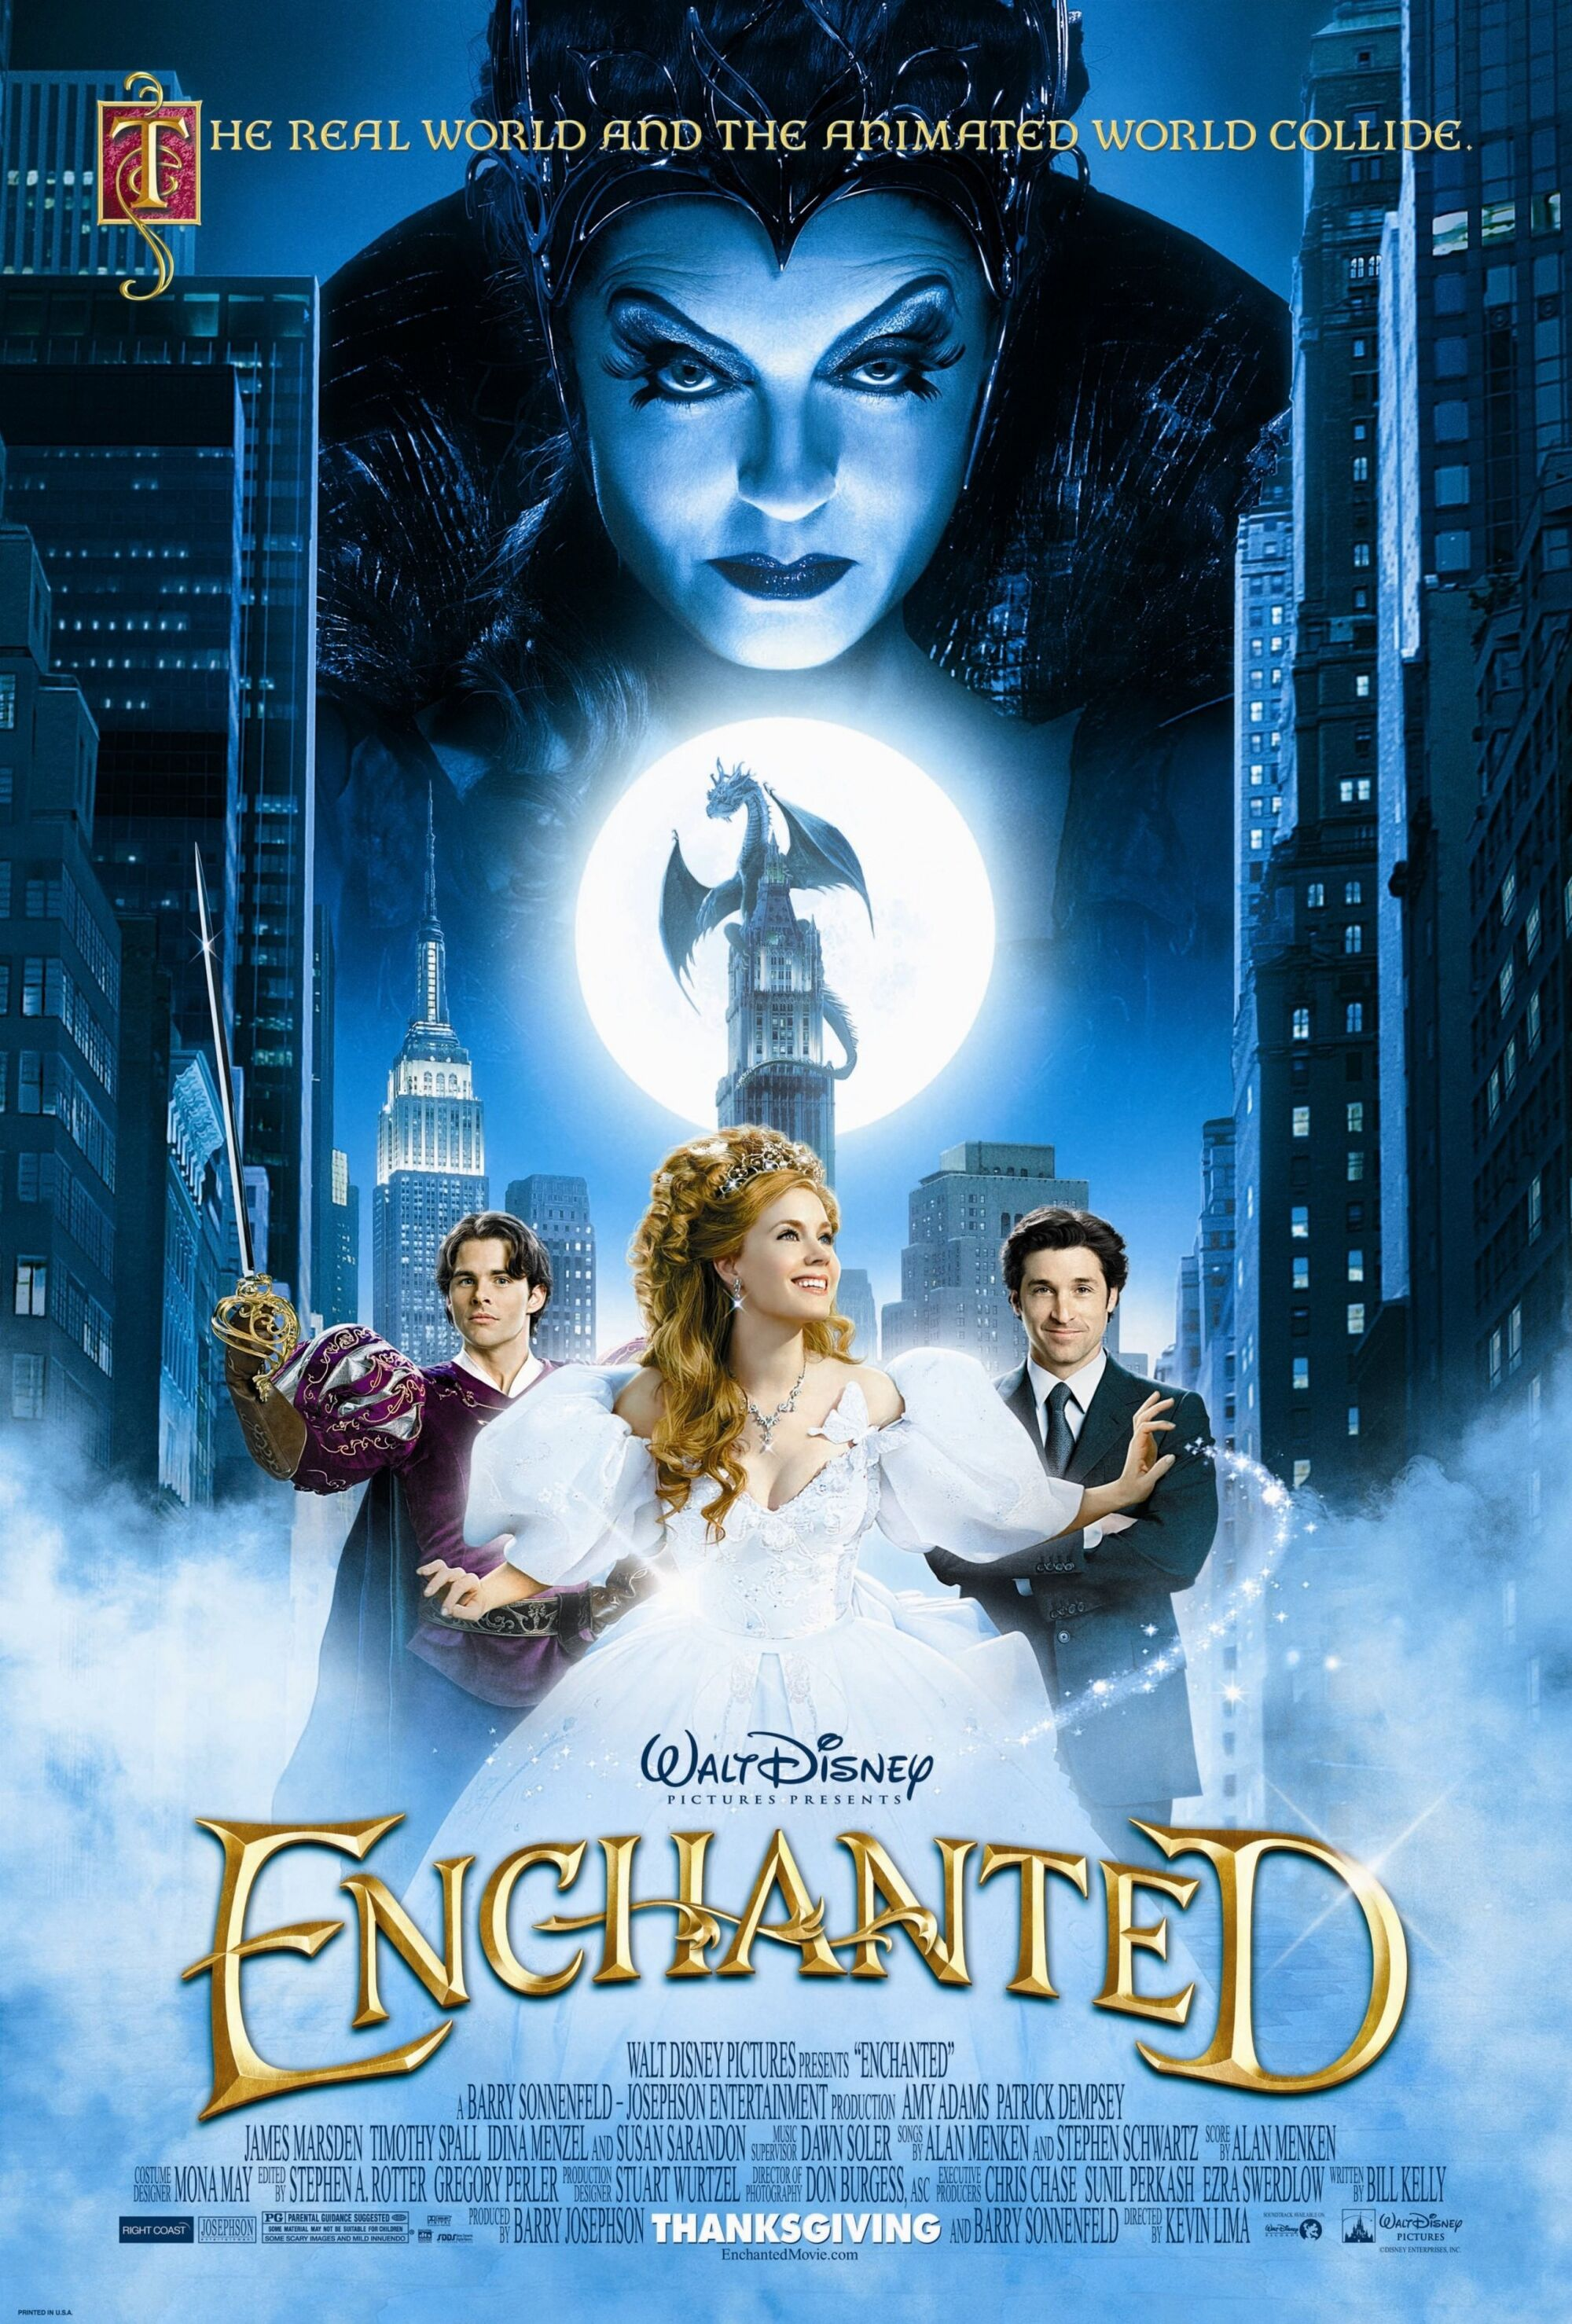 Enchanted | Disney Wiki | FANDOM powered by Wikia